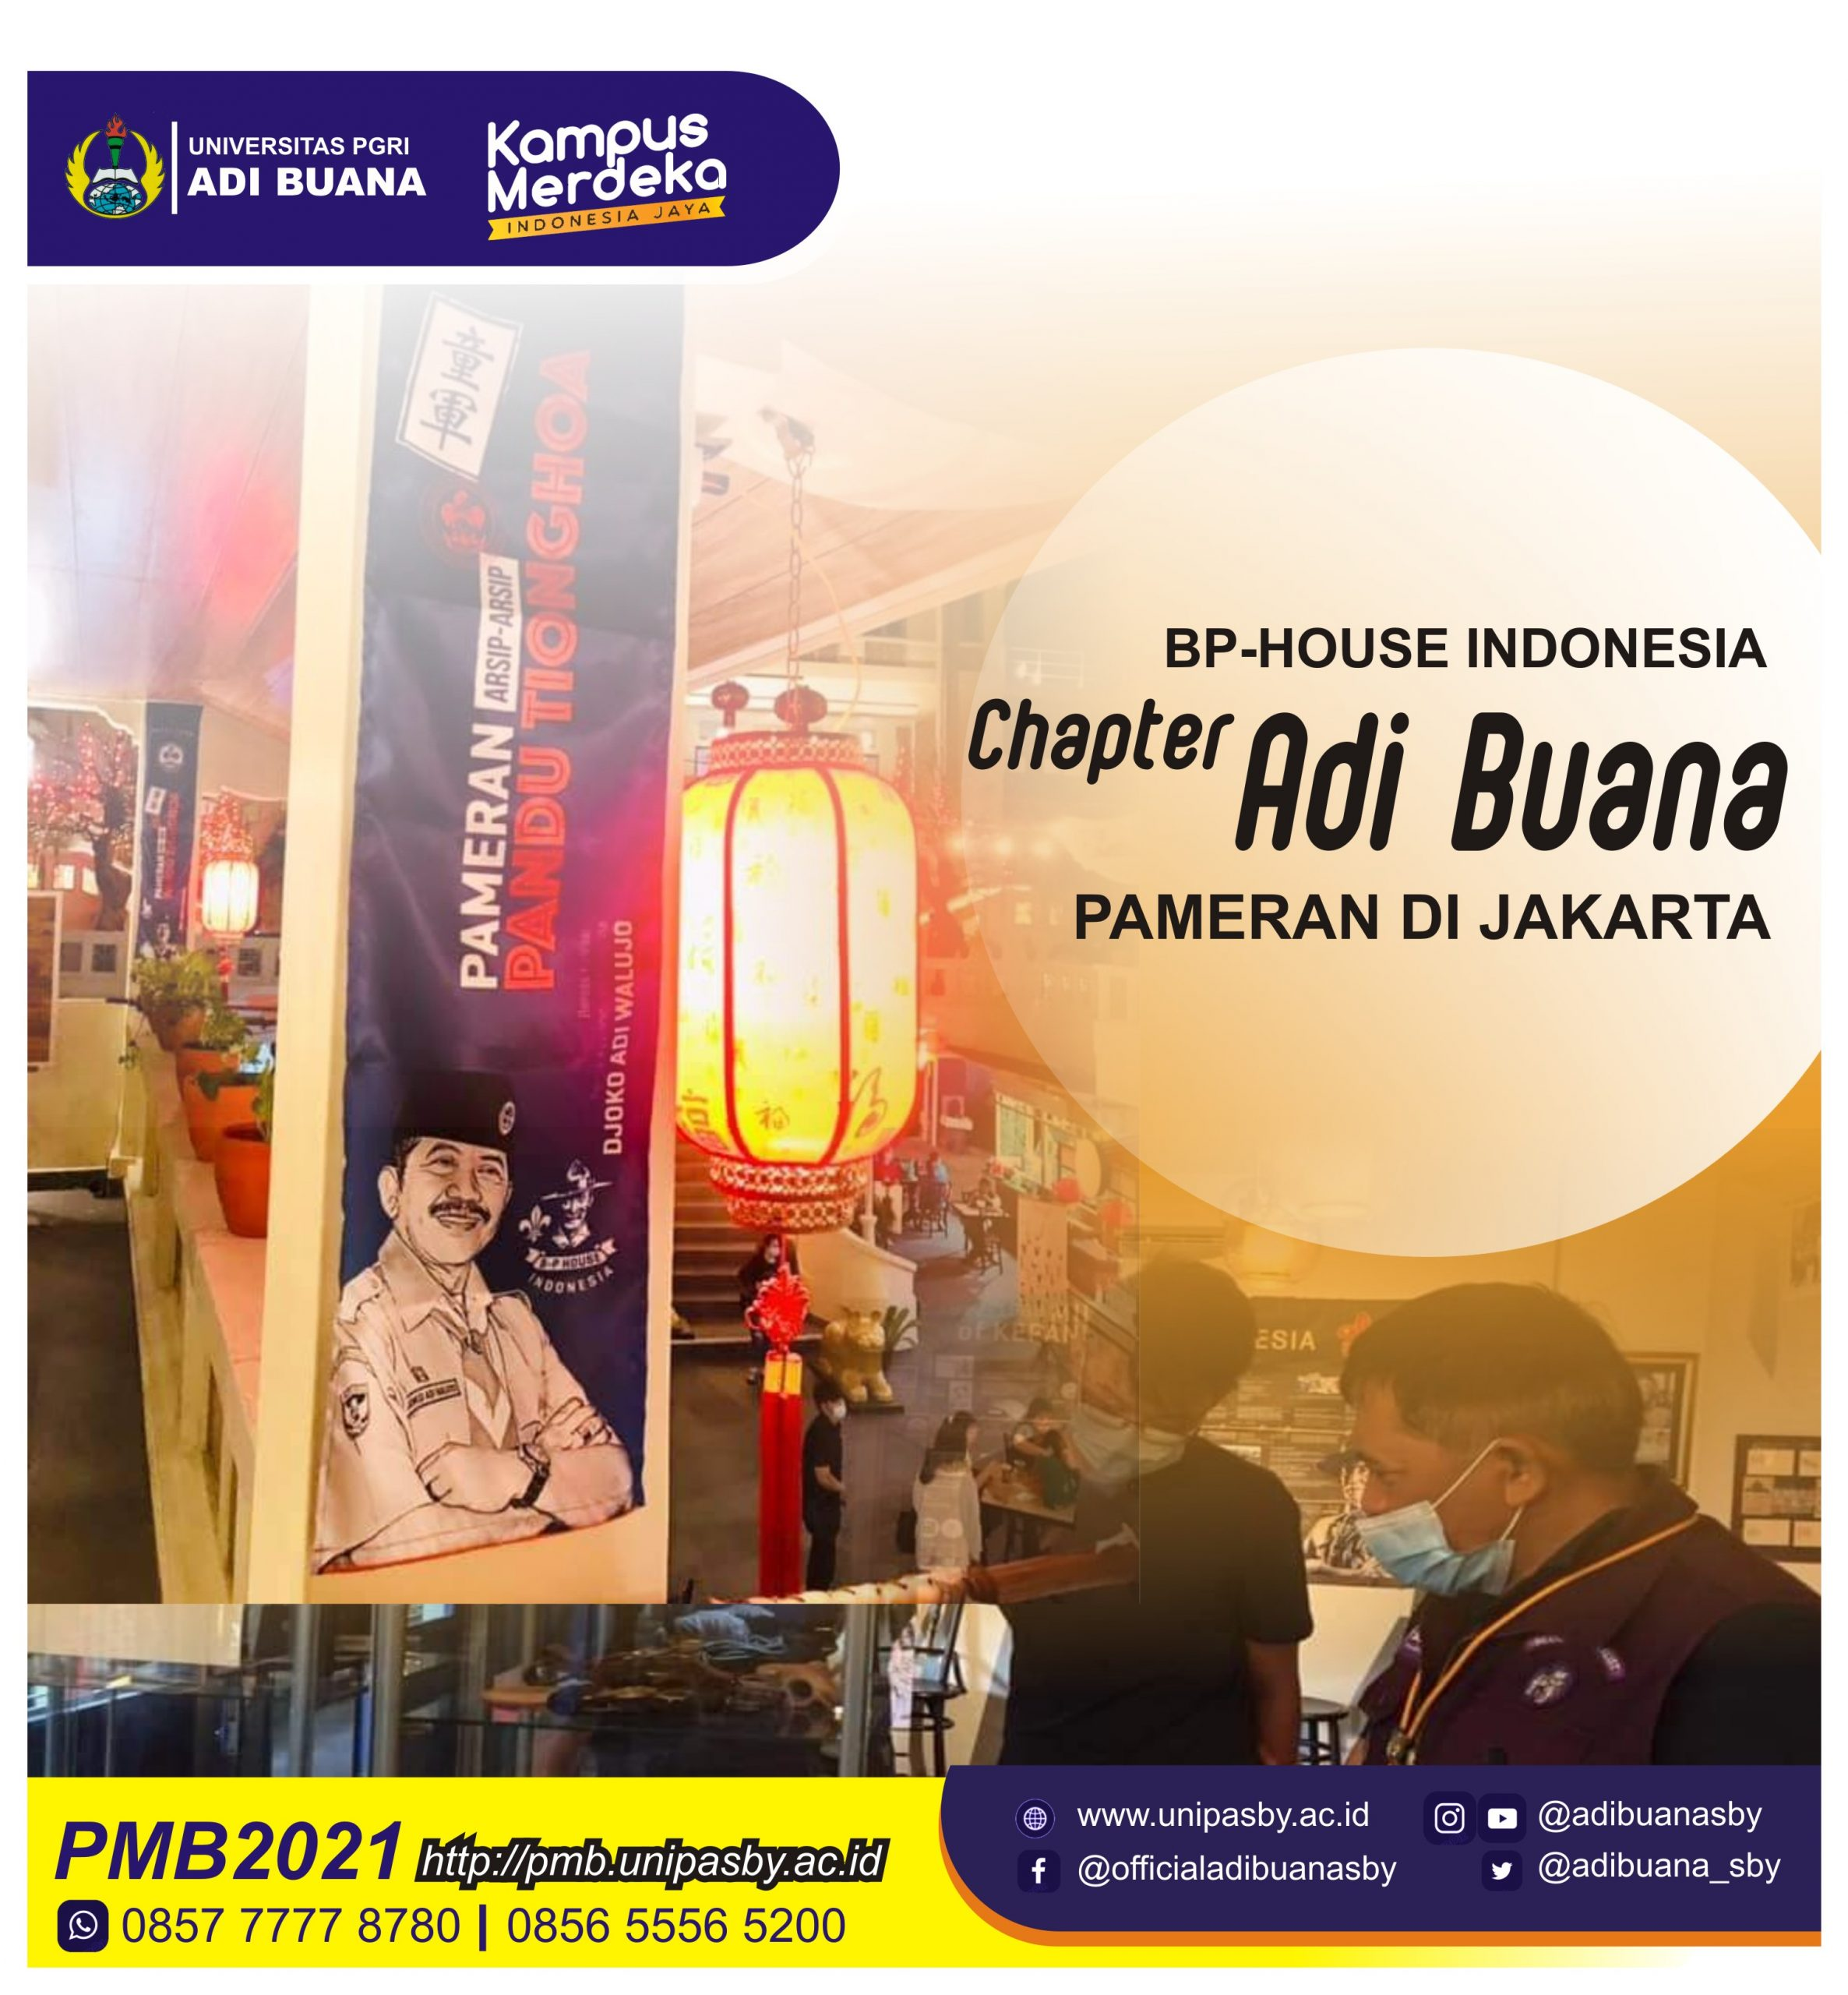 1619489357_BP-HOUSE CHAPTER ADI BUANA